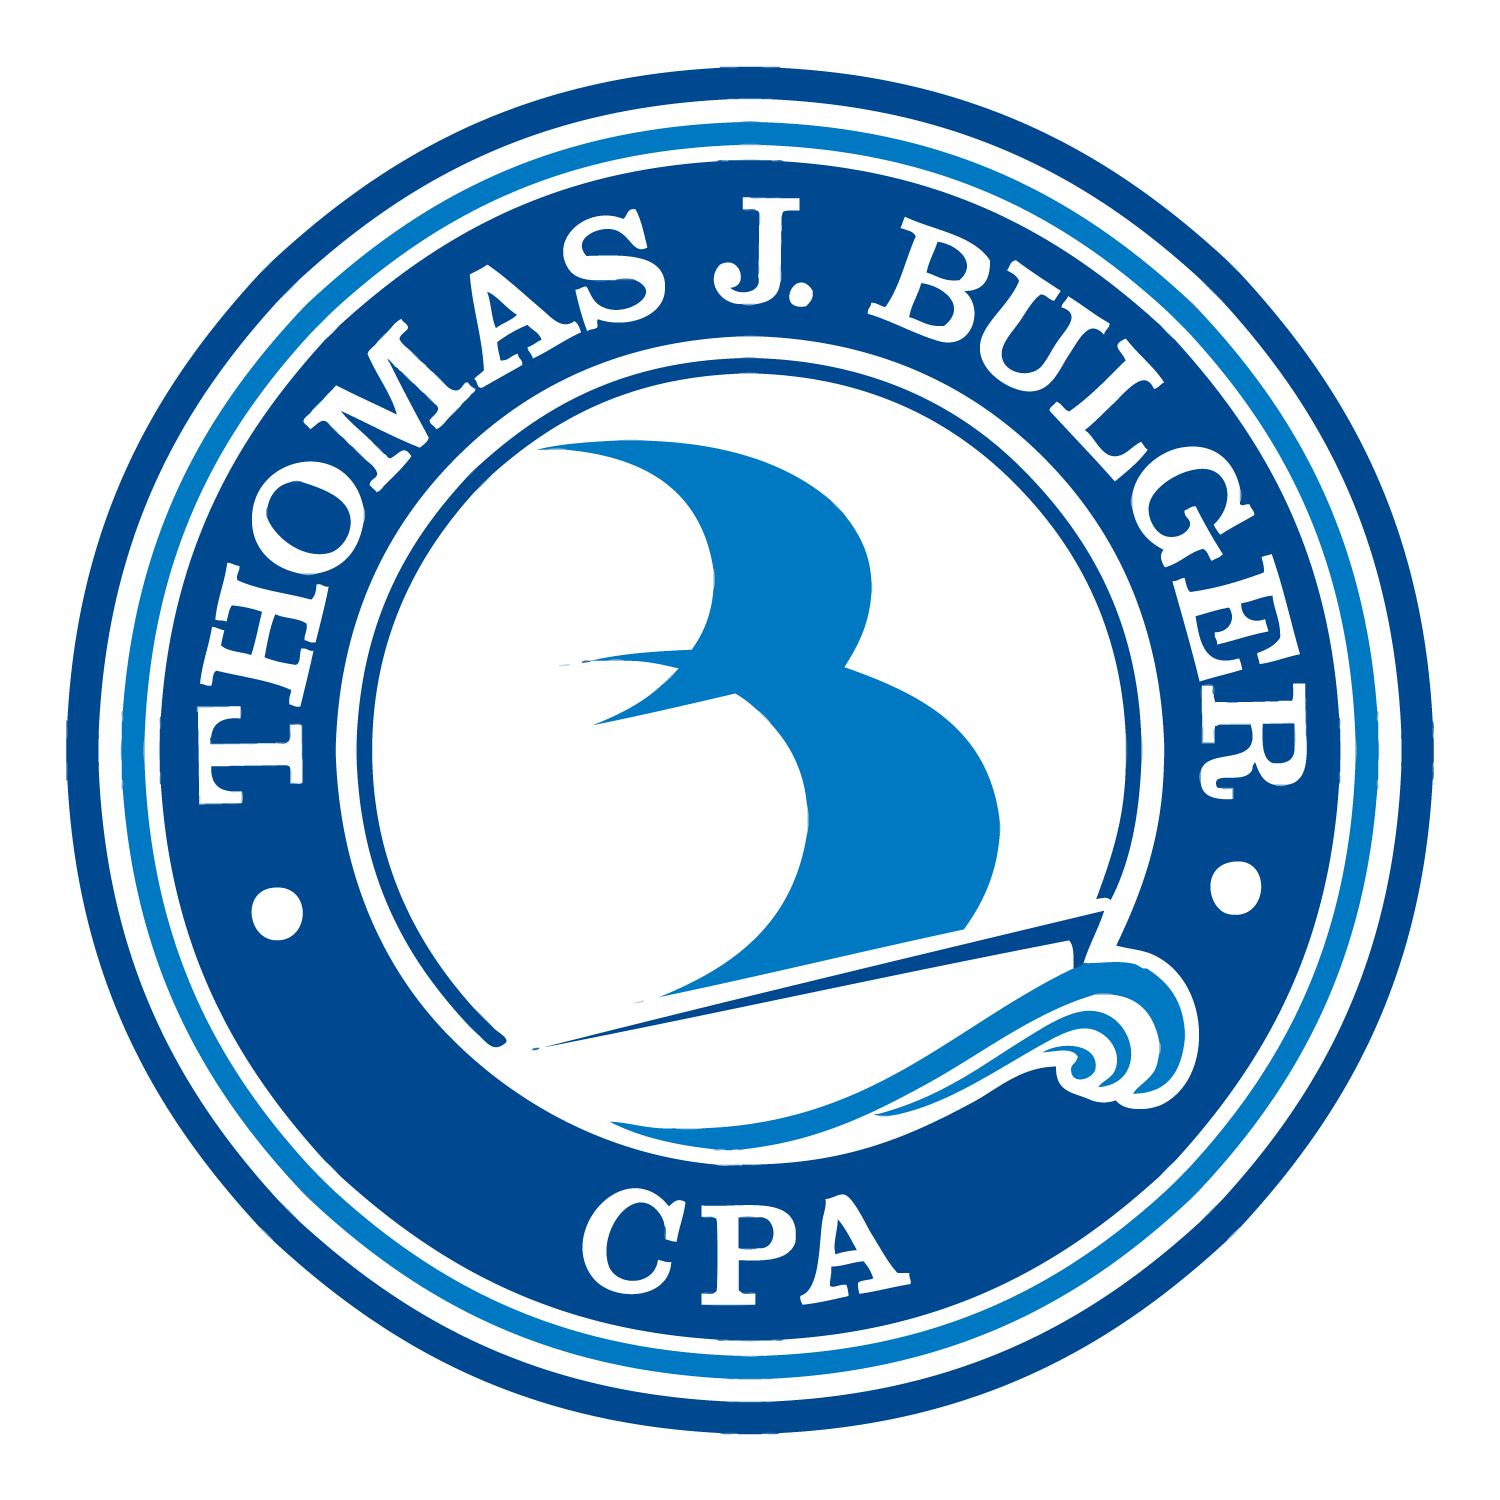 Tom Bulger, CPA